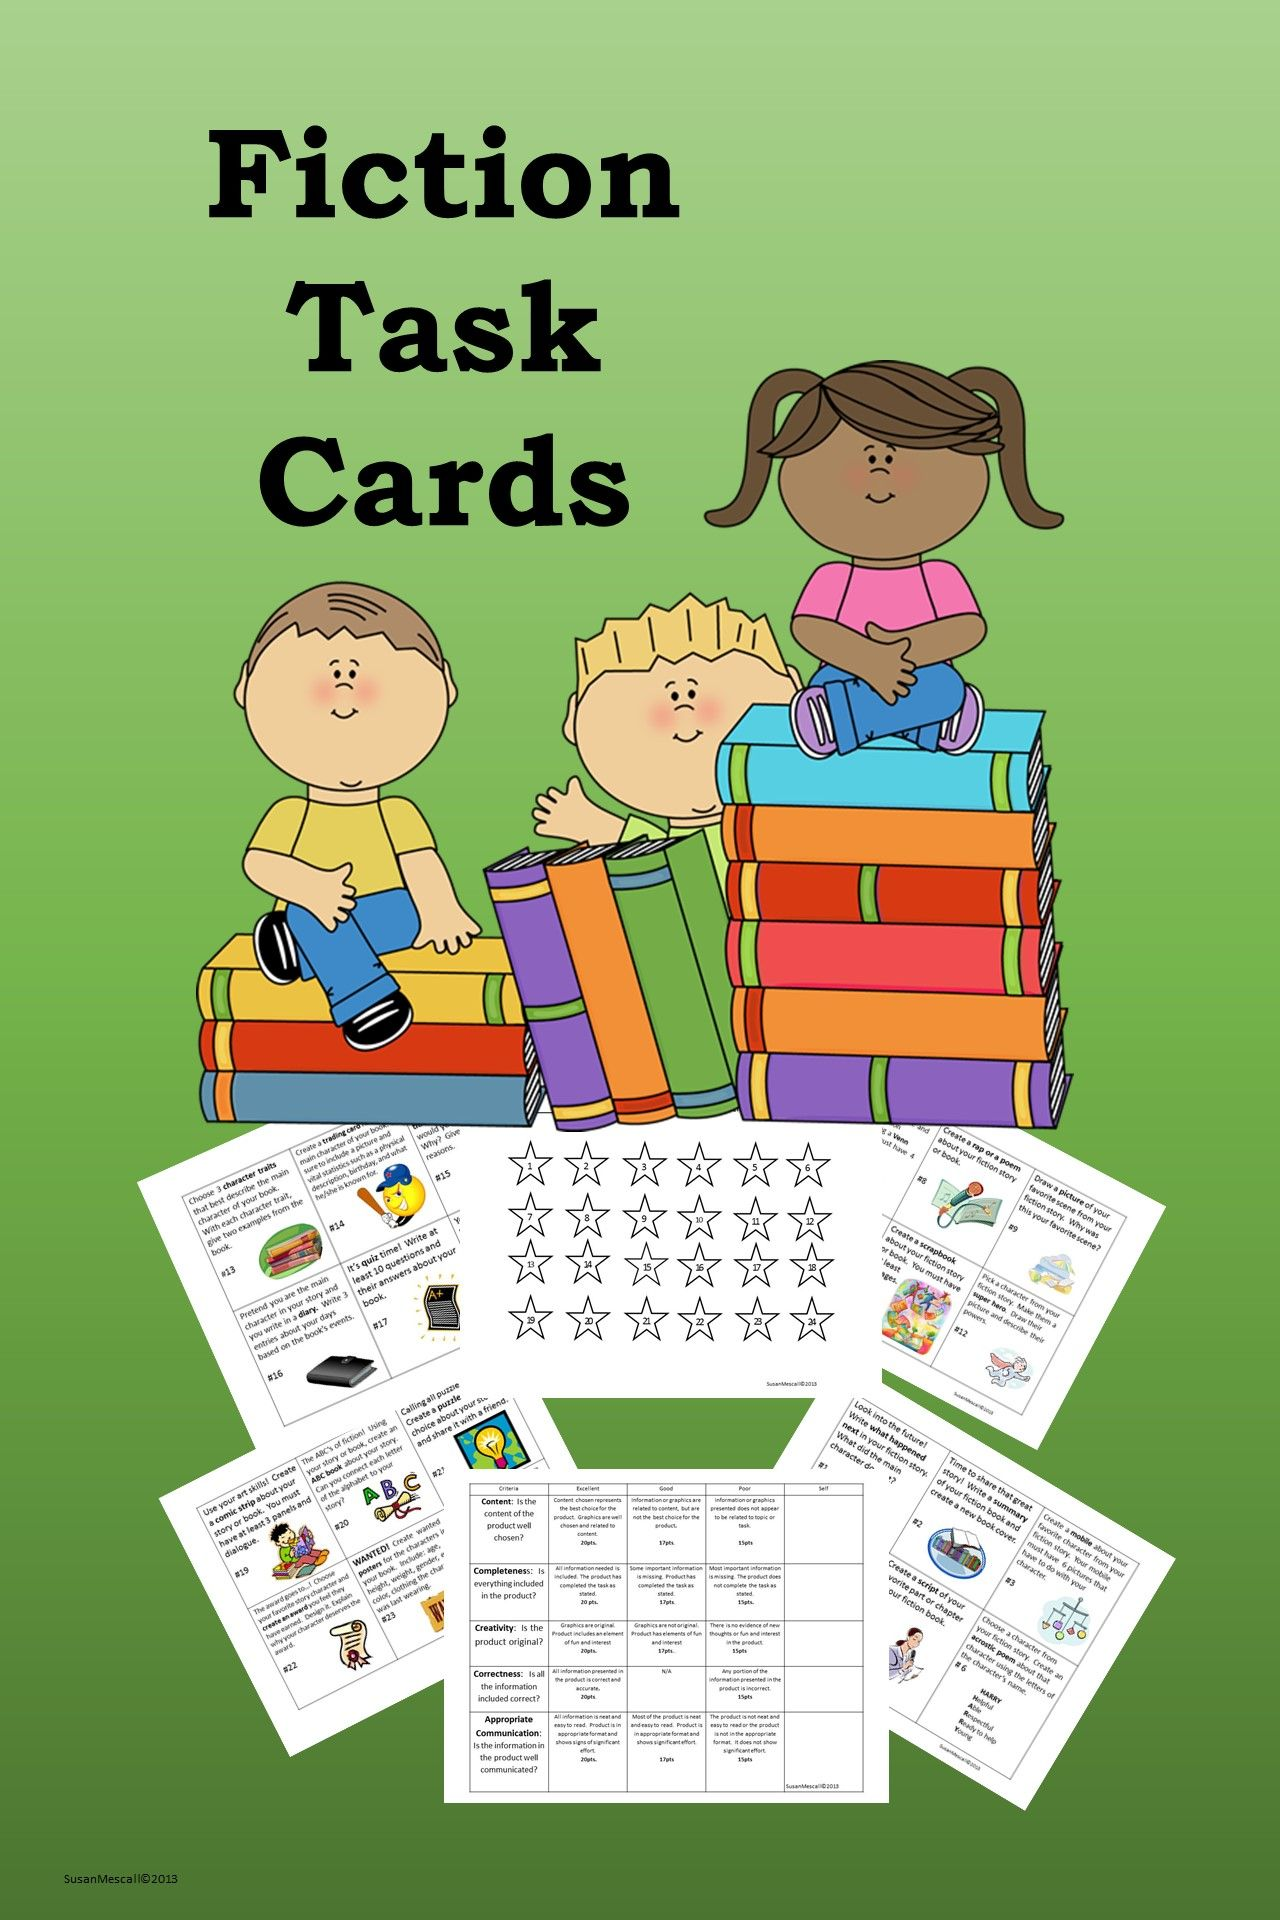 Fiction Task Card Assessment Activities Distance Learning